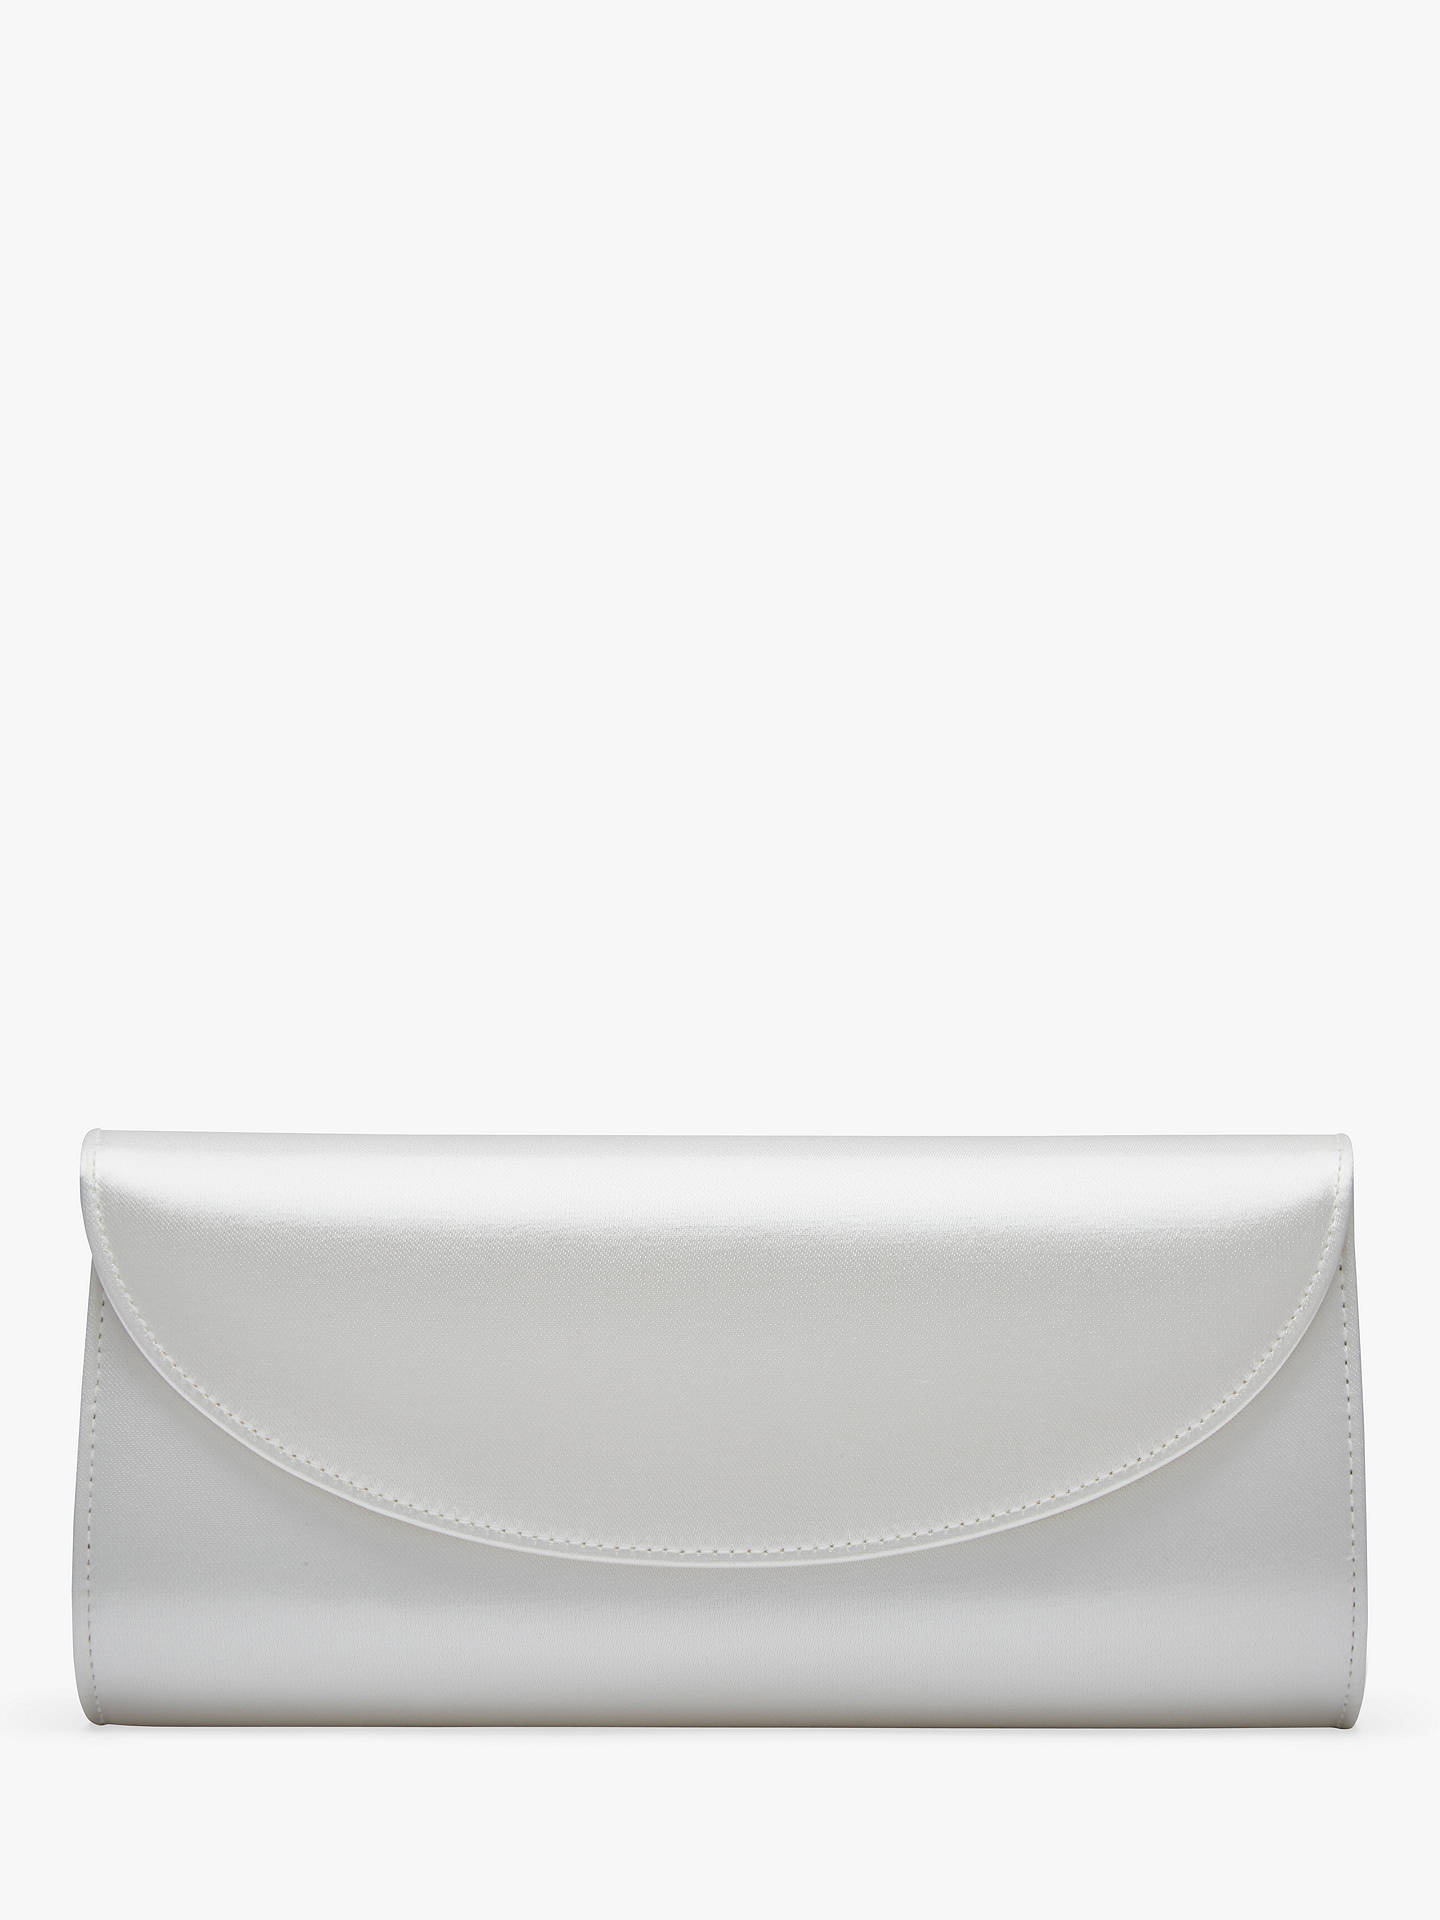 8e3d4fc03f8 Buy Rainbow Club Celina Clutch Bag, Ivory Online at johnlewis.com